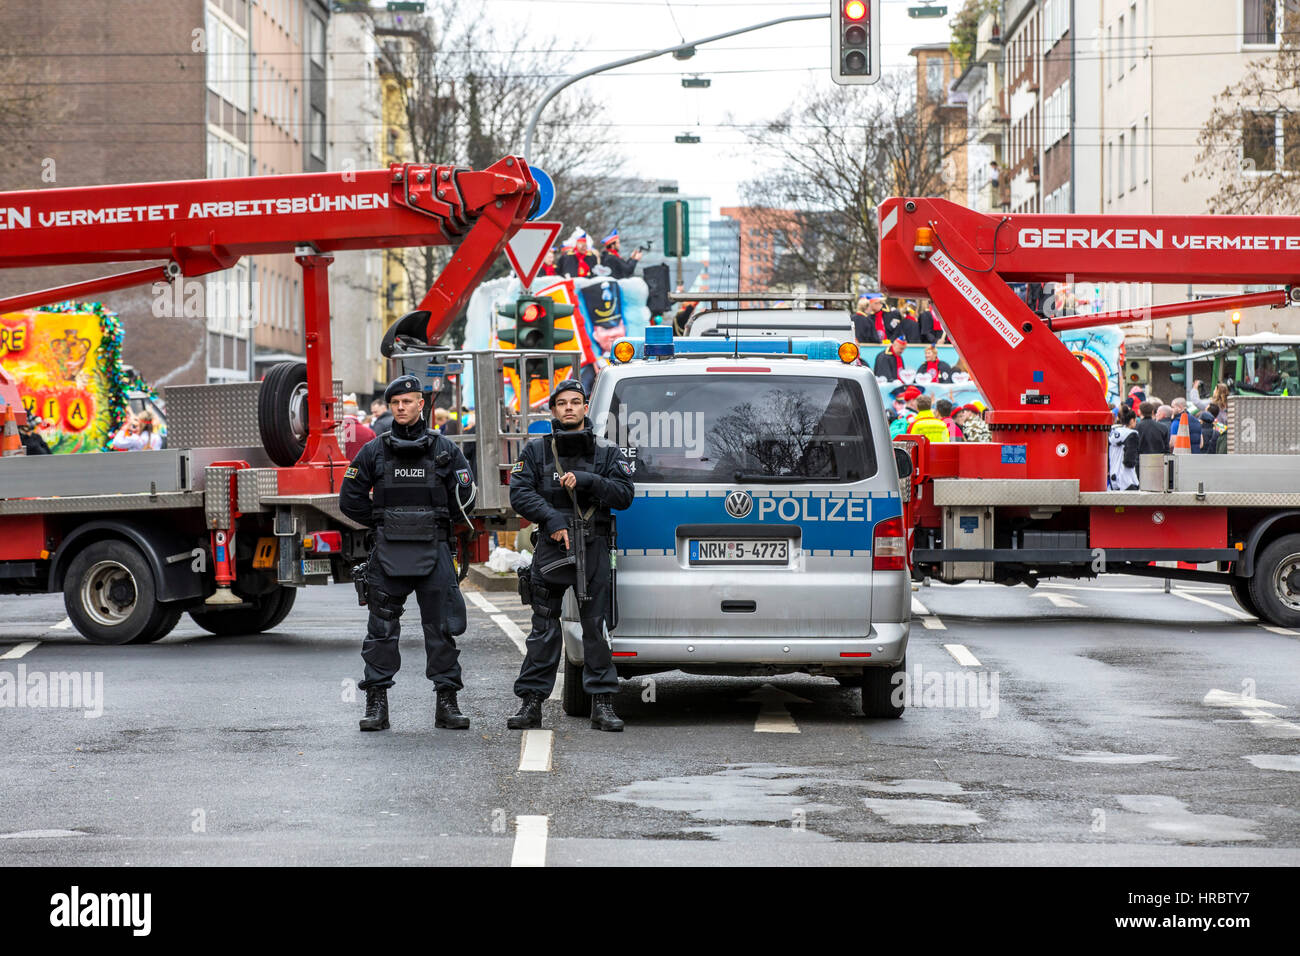 German Carnival parade in Düsseldorf, Police officers secure the parade, blocking roads with trucks, against terrorist Stock Photo